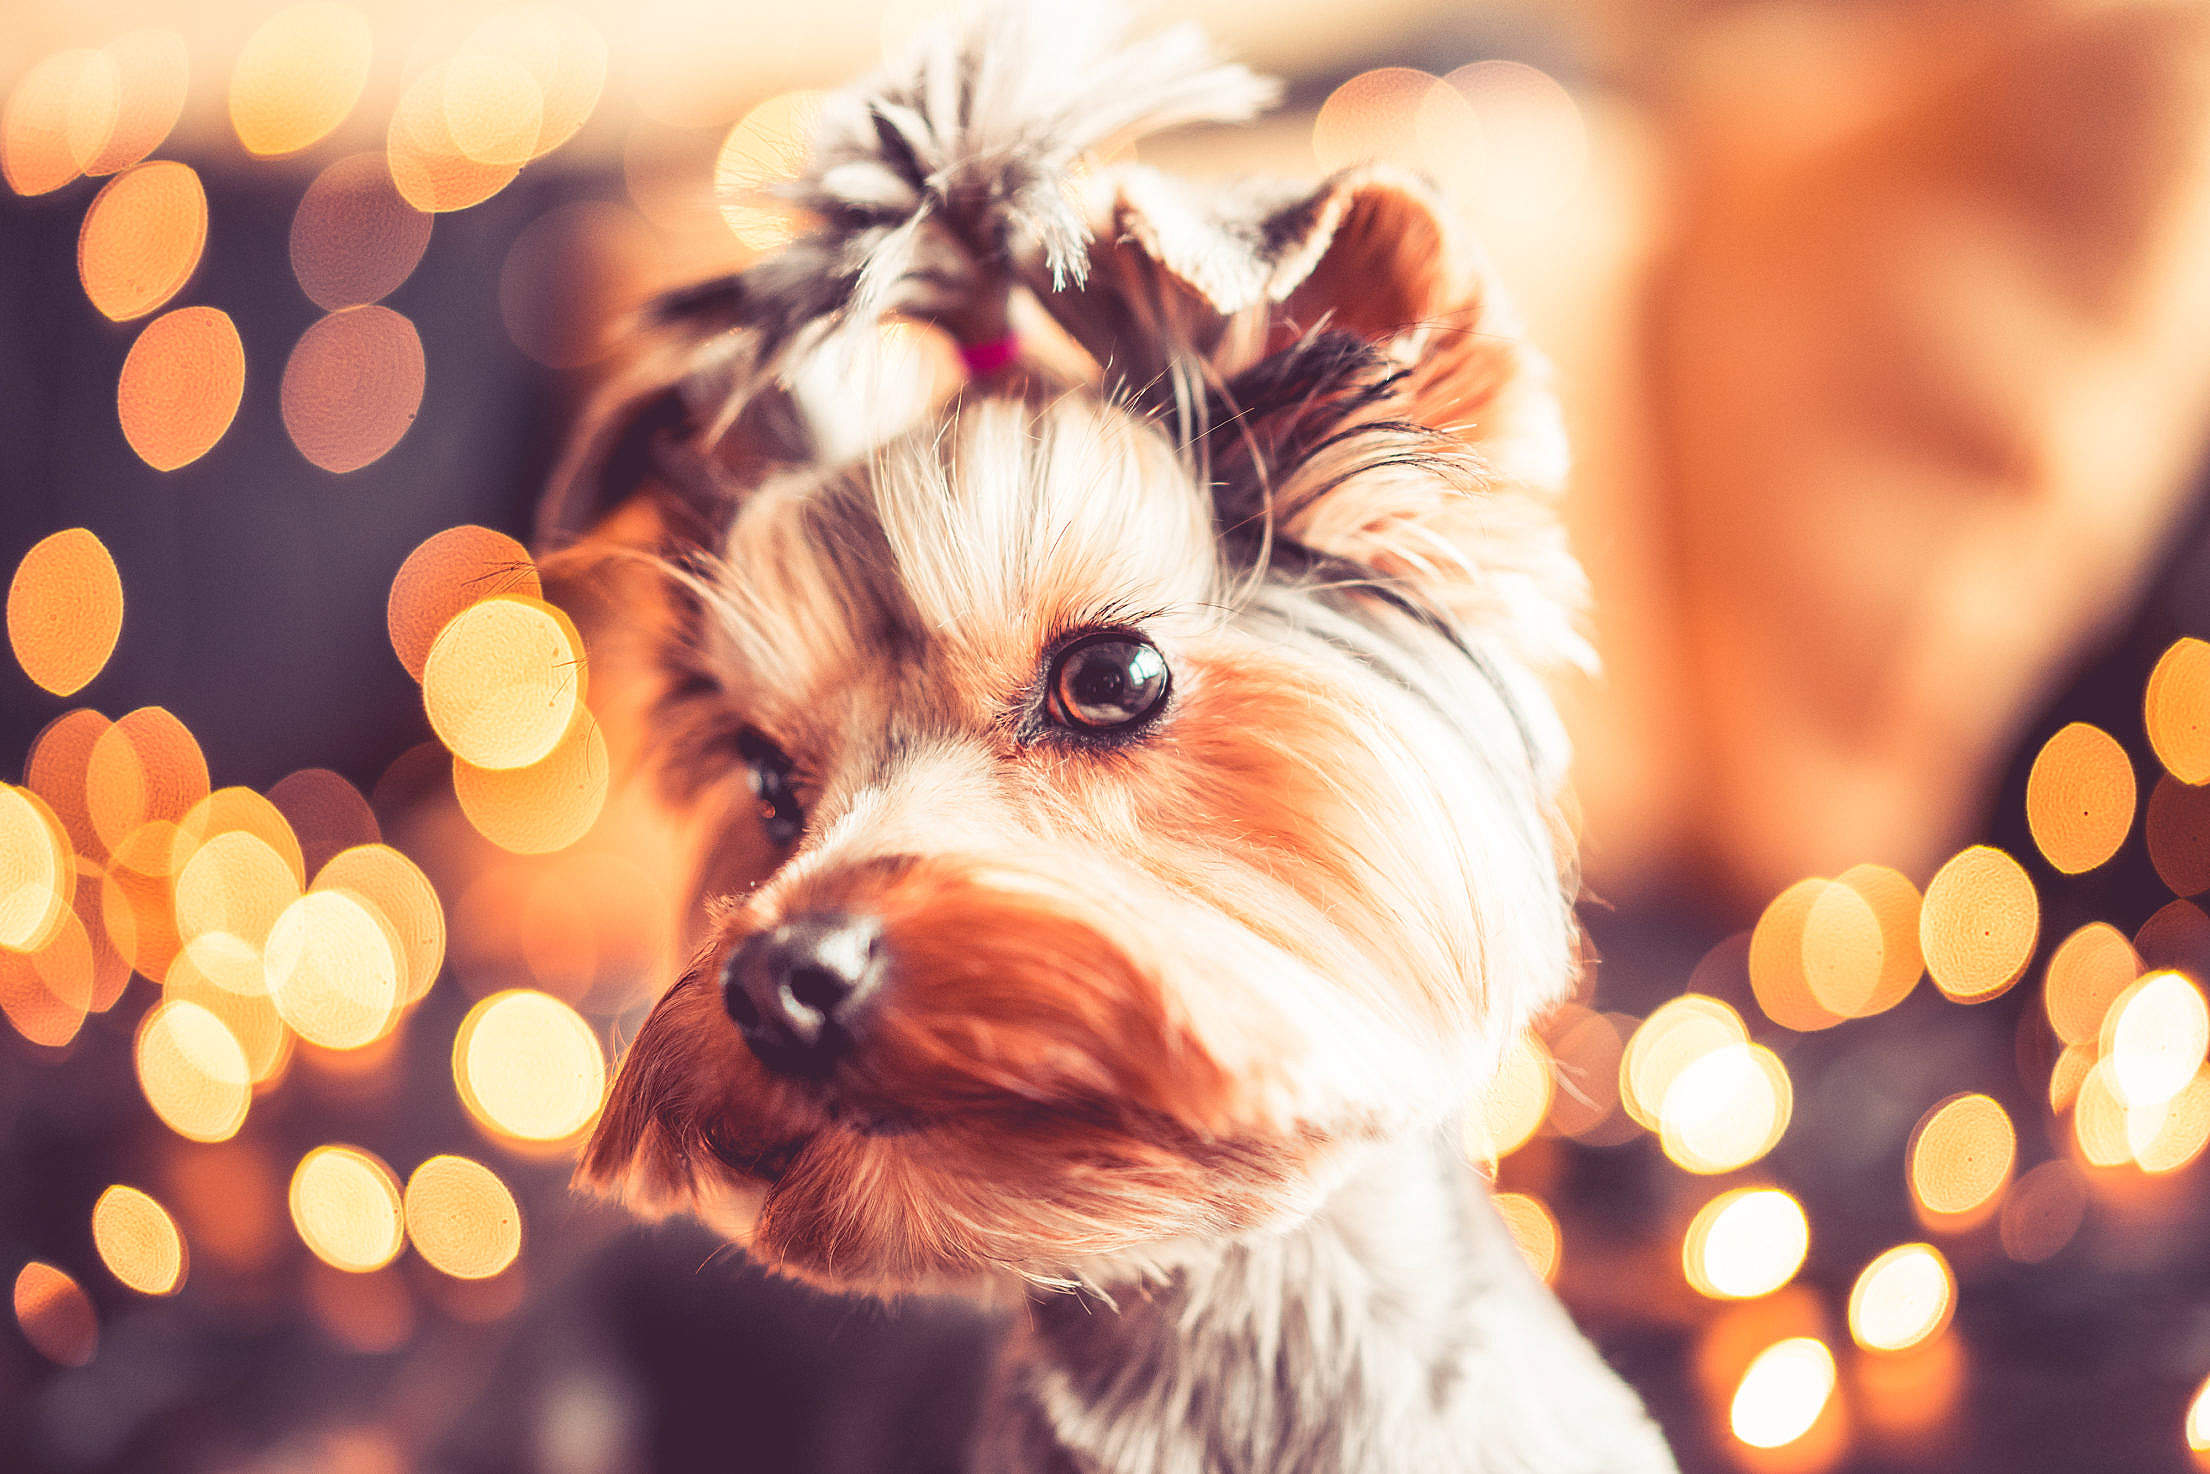 Wonderful Christmas Portrait of Cute Yorkshire Terrier Free Stock Photo